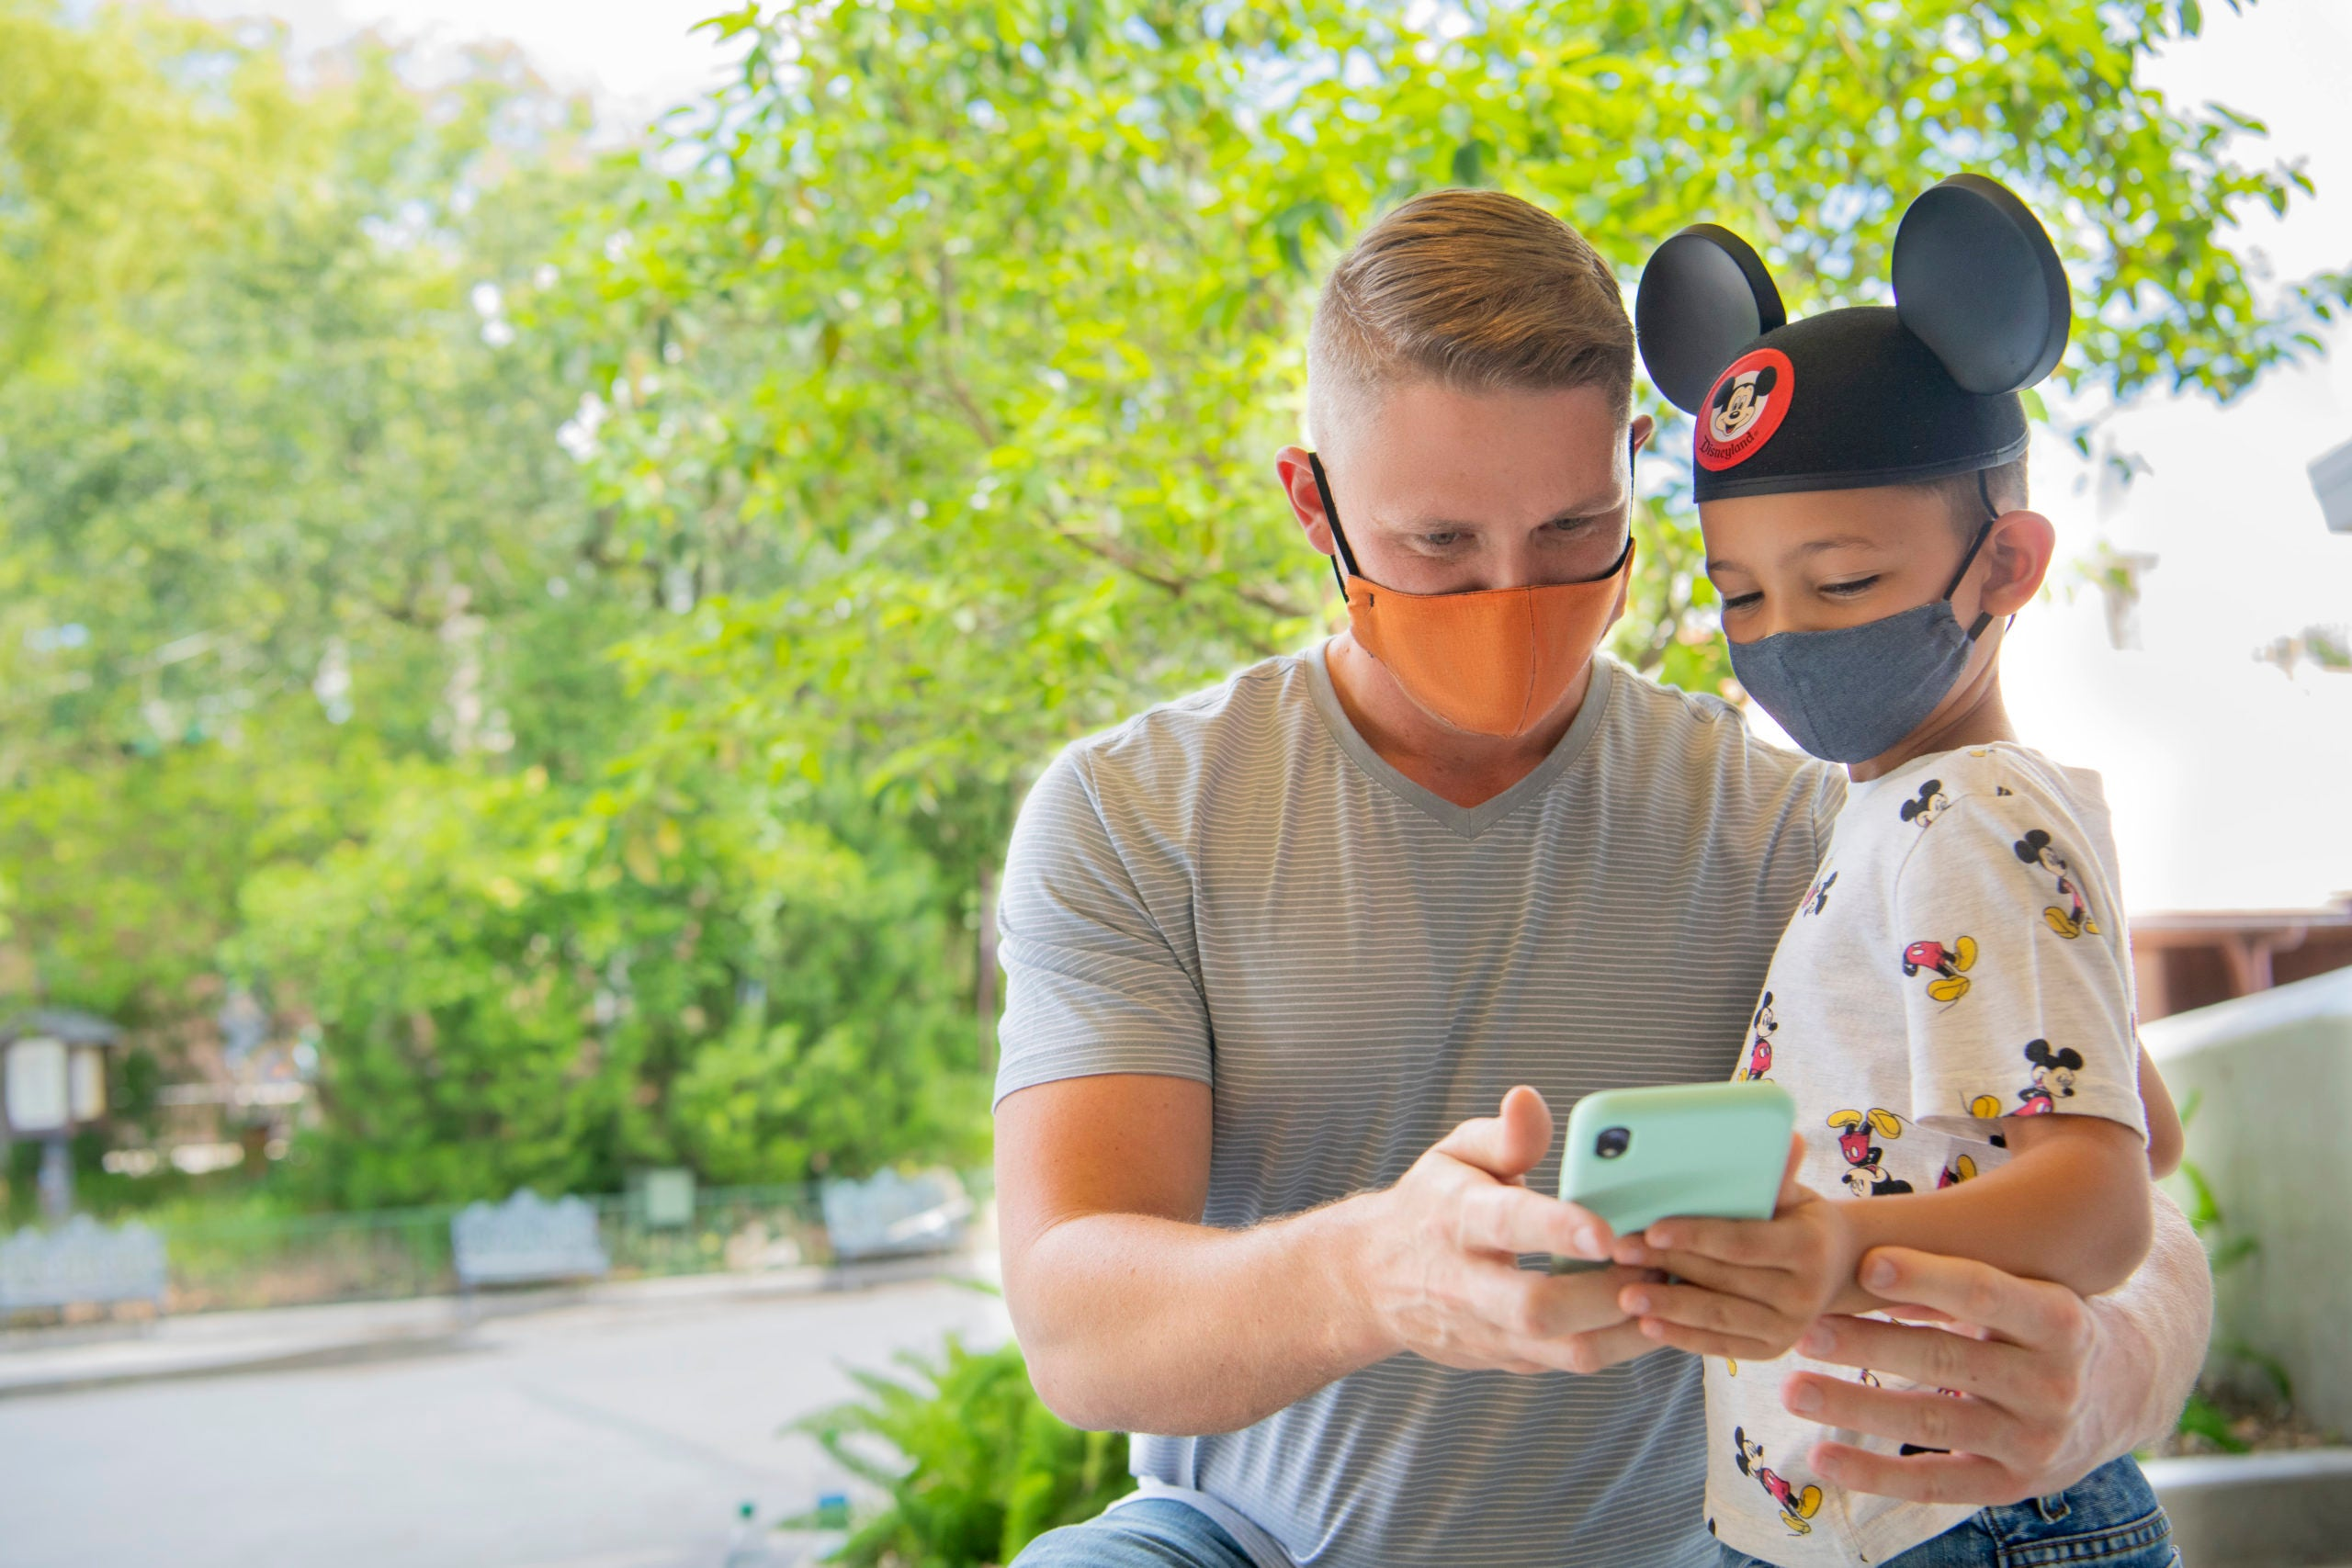 Mask on or mask off? Your guide to the latest rules, by theme park - The Points Guy